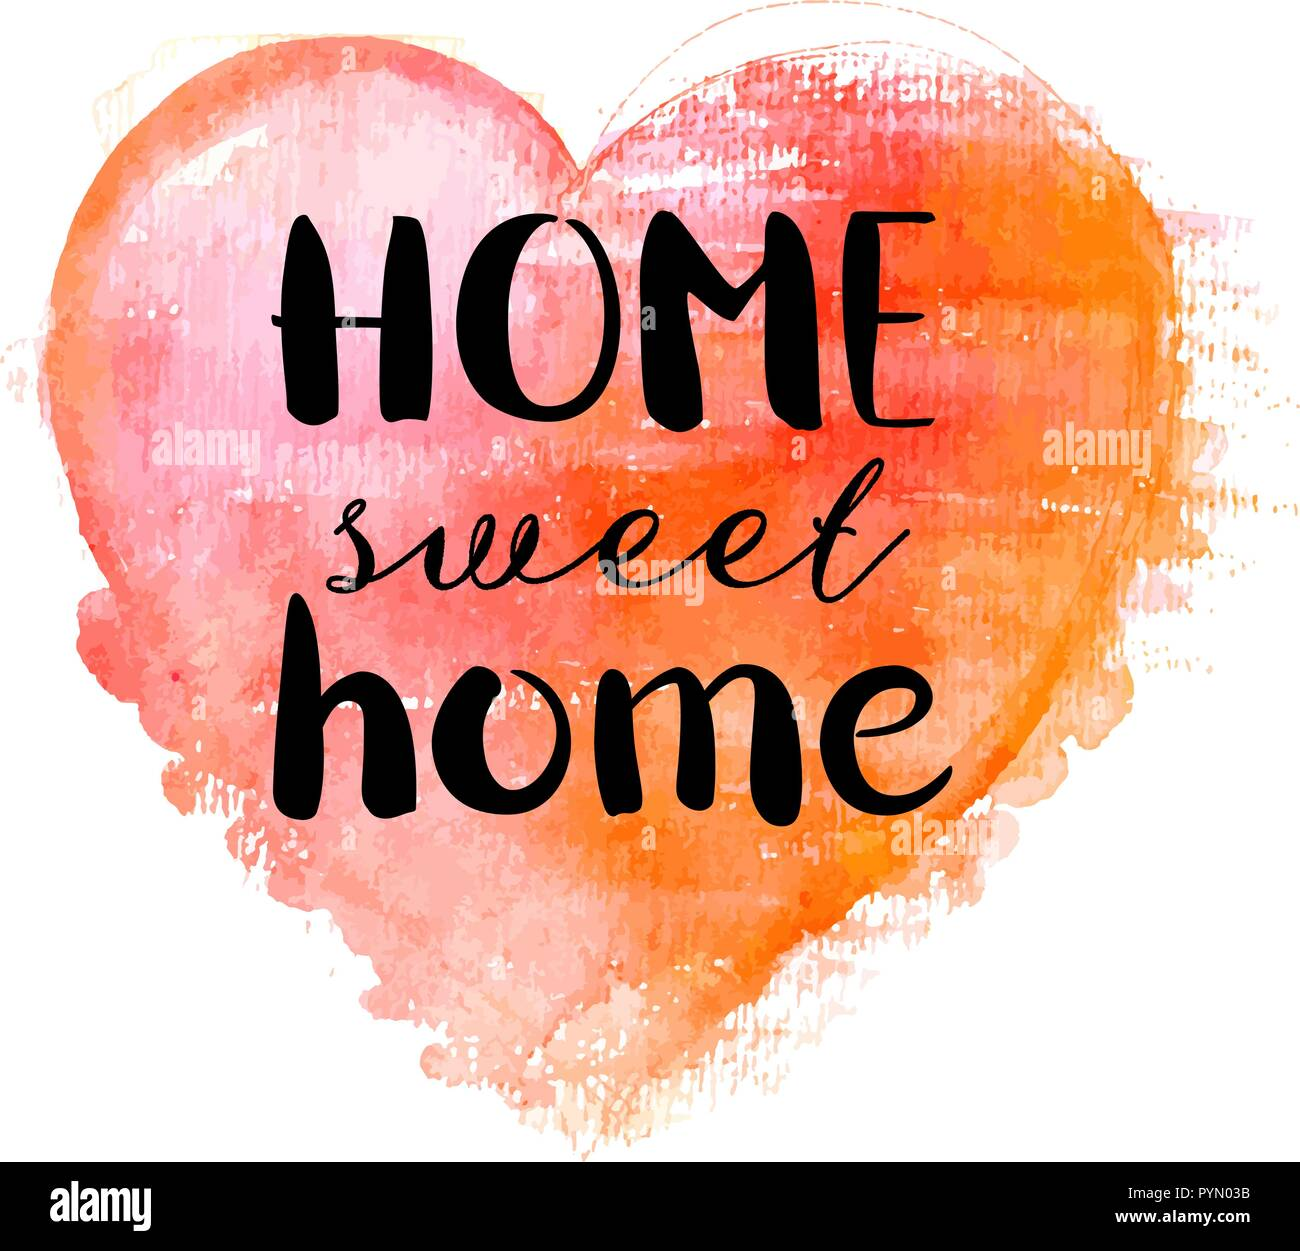 Home Sweet Home, a decorative design with hand drawn lettering and a watercolour heart, vector illustration - Stock Vector